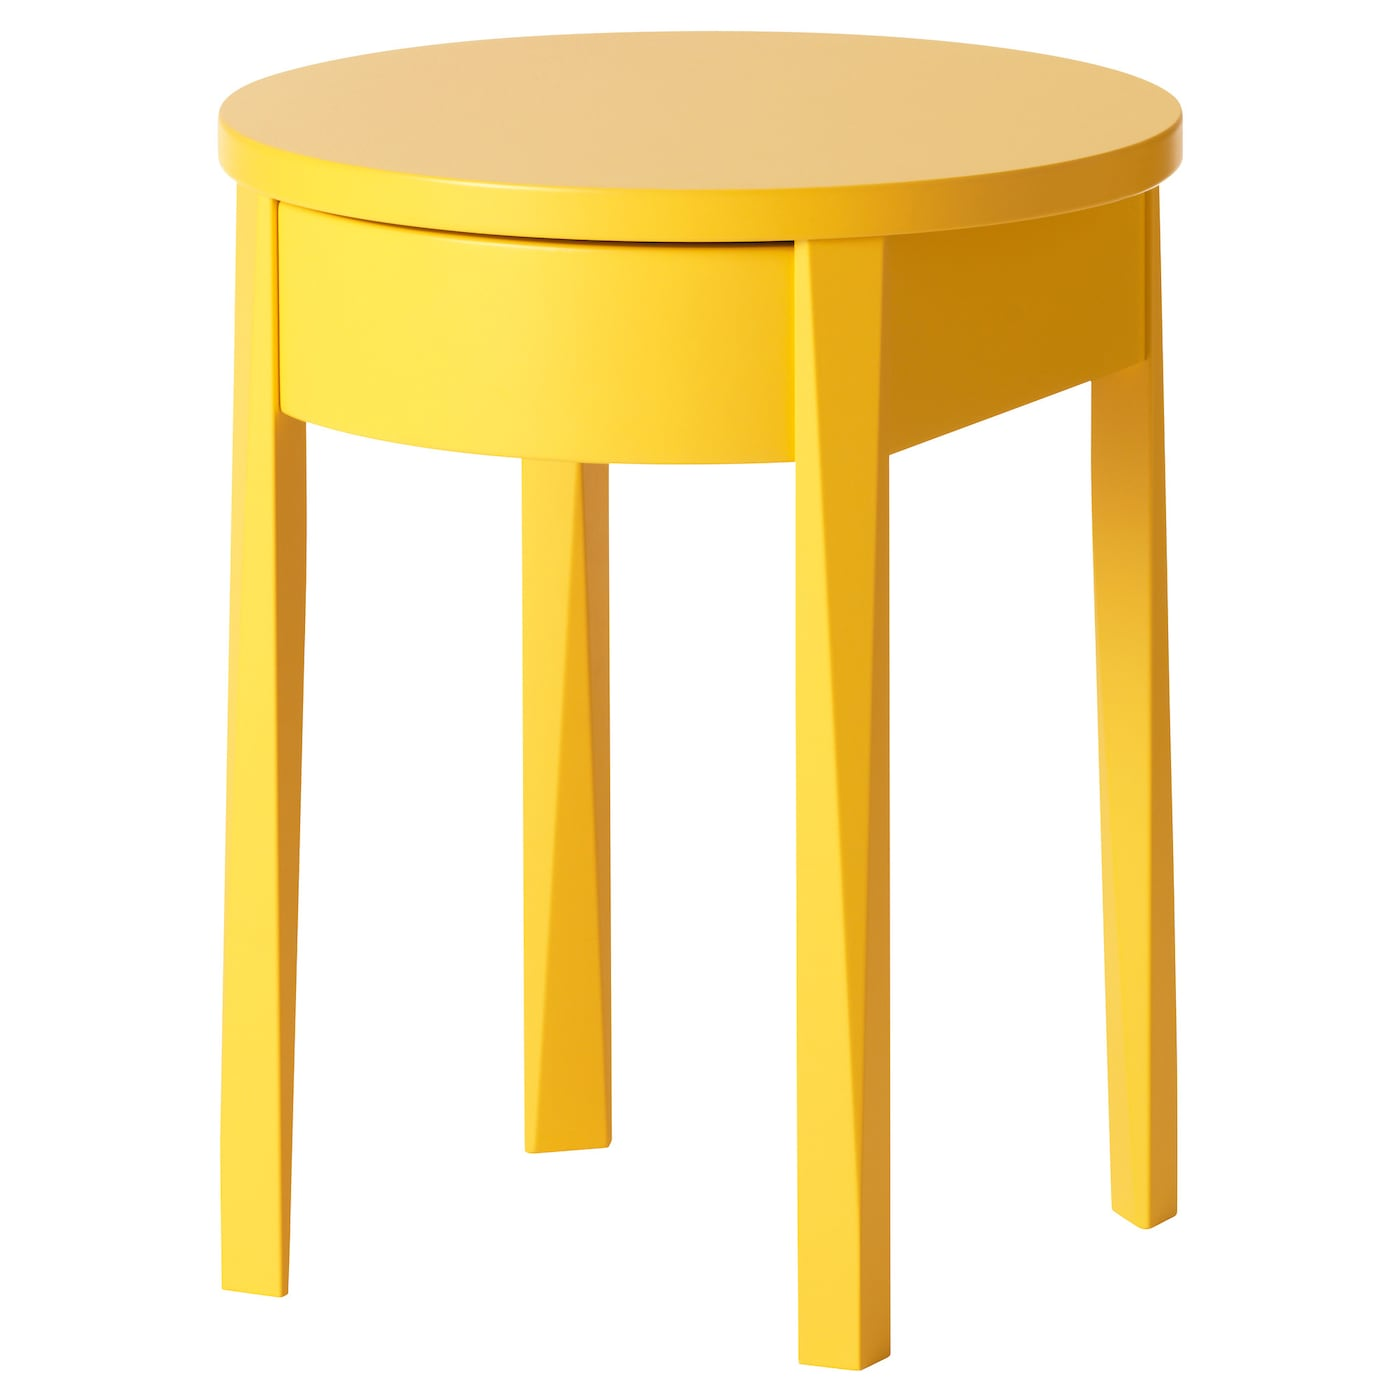 Stockholm bedside table yellow 42x42 cm ikea for Ikea green side table